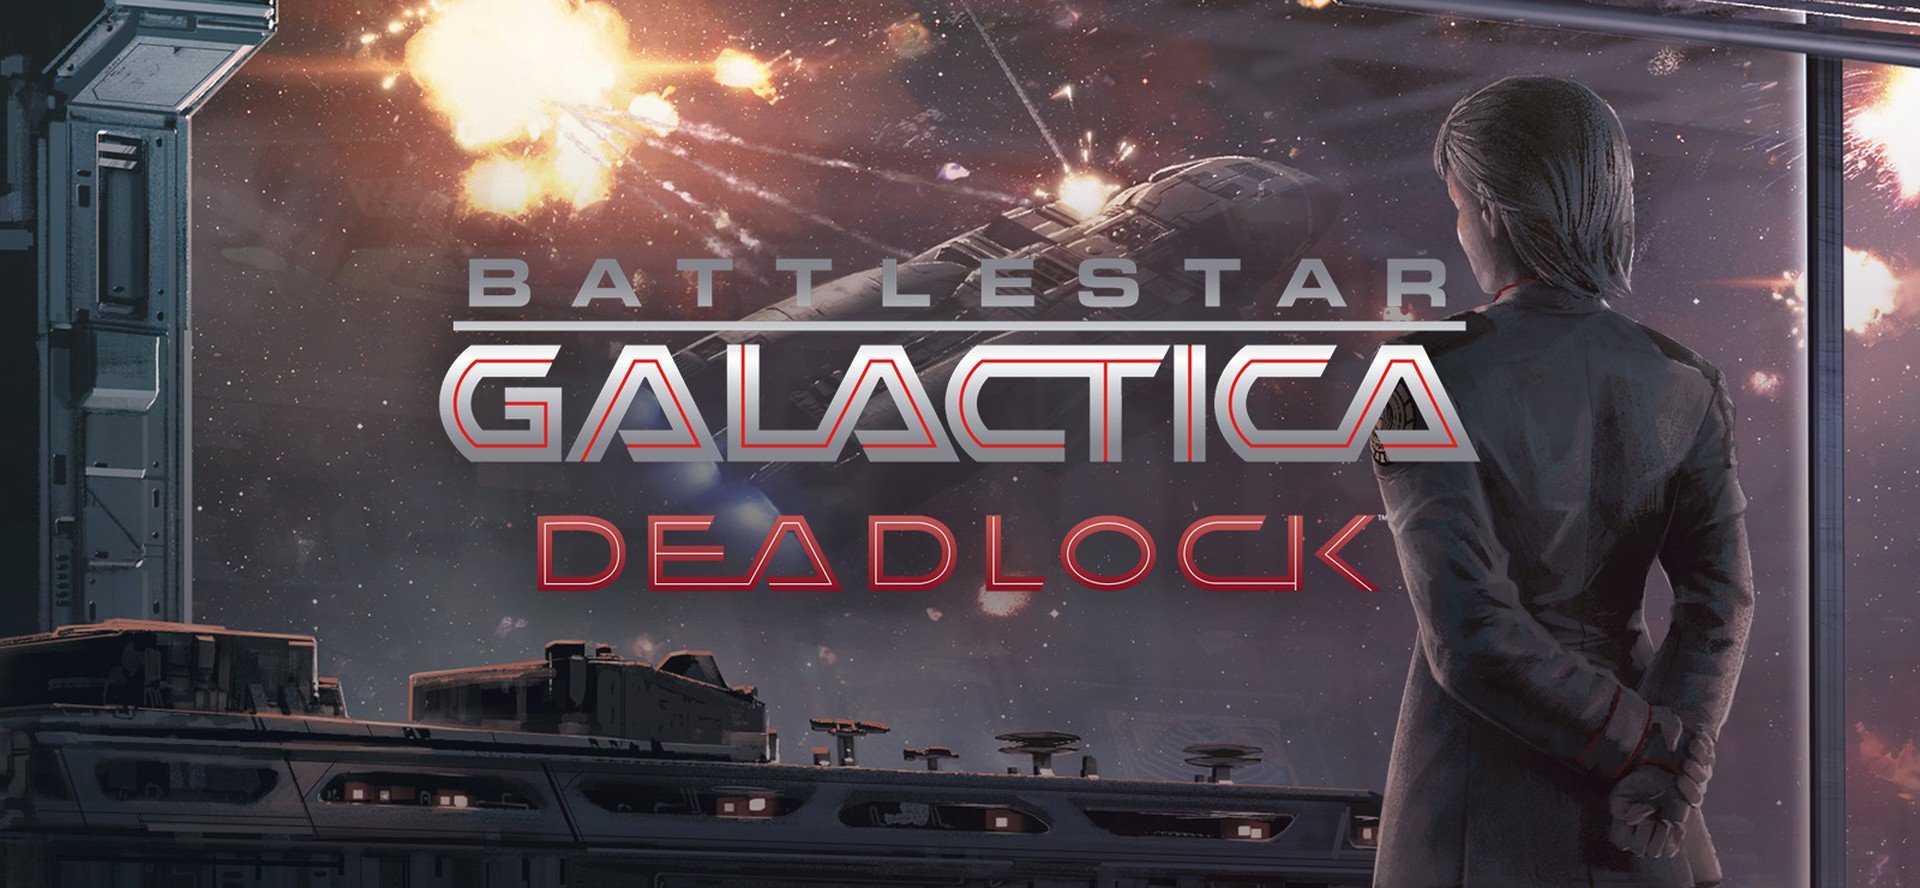 Battlestar Galactica Deadlock Video